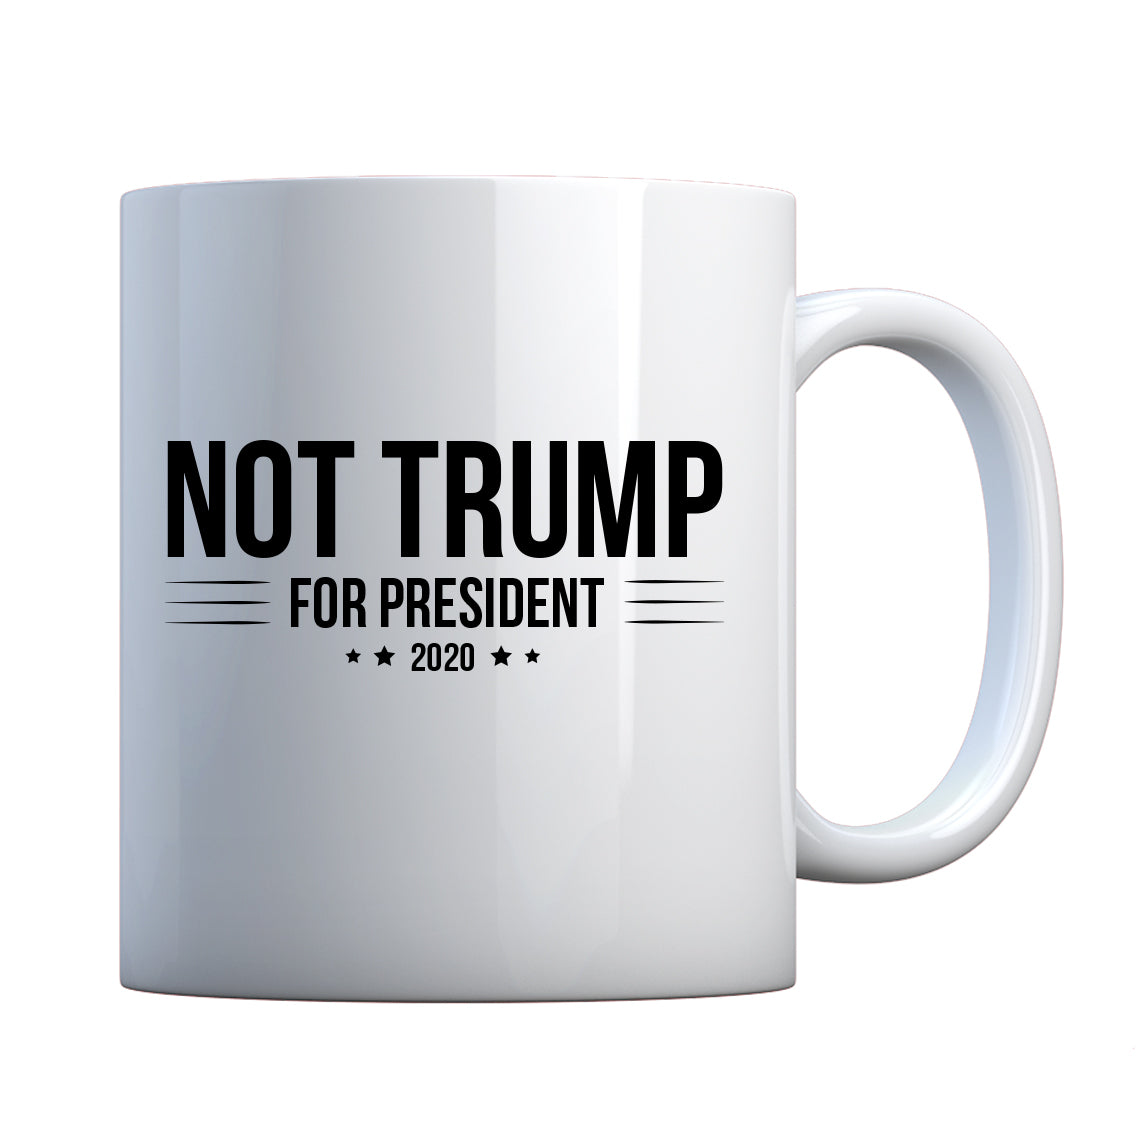 NOT TRUMP for President 2020 Ceramic Gift Mug